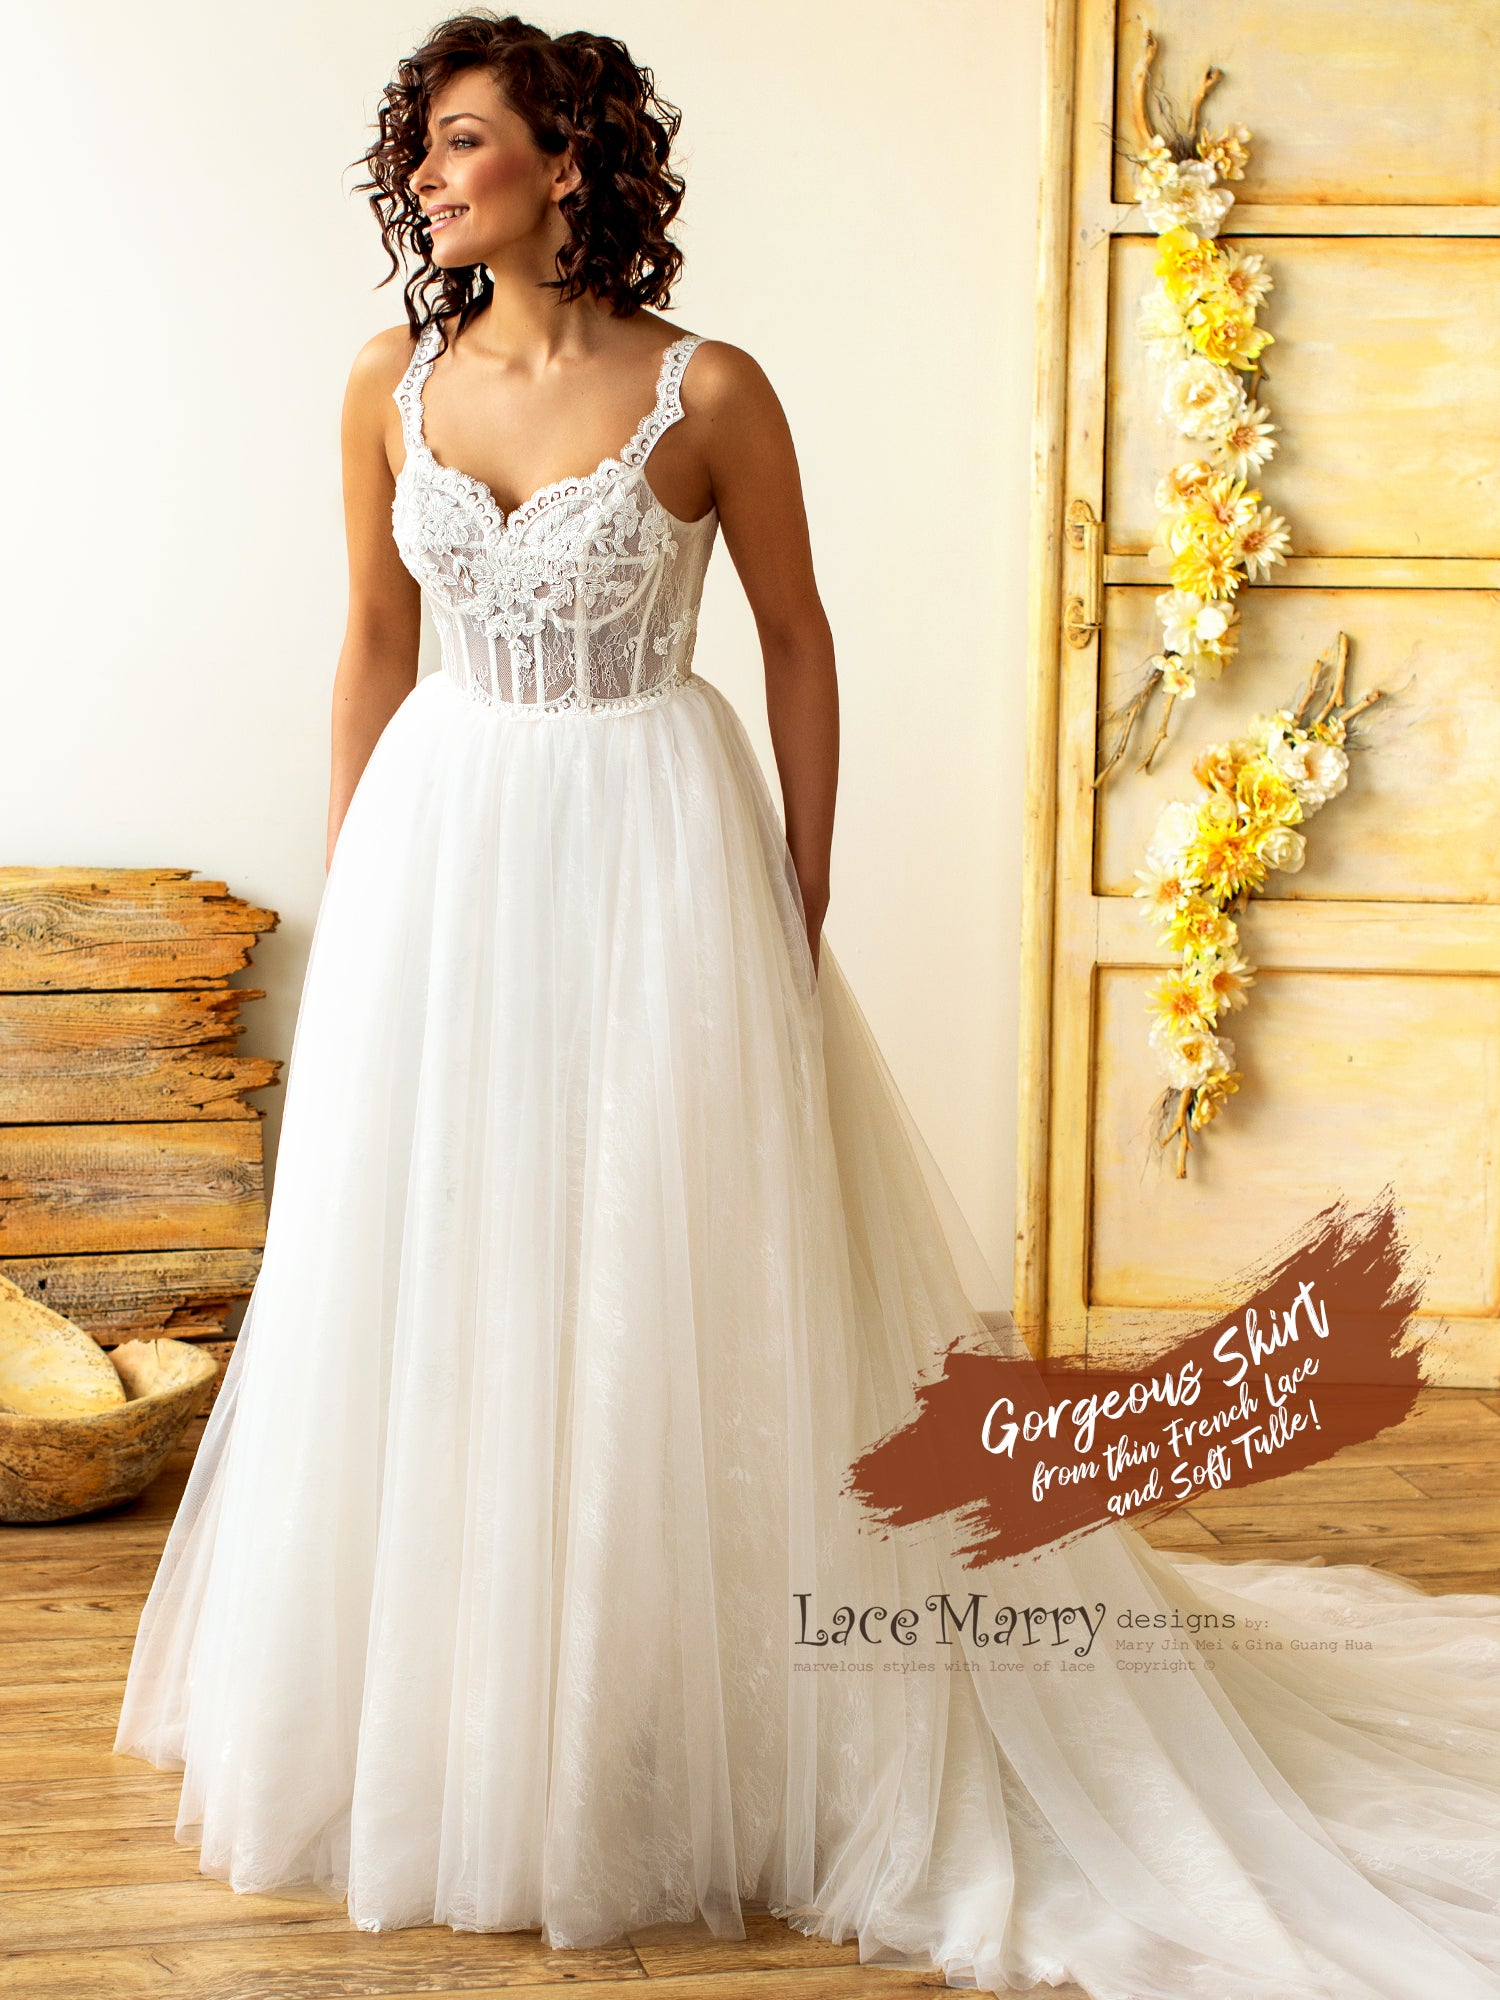 Gorgeous Hand Beaded Sweetheart Neckline Wedding Dress Lacemarry